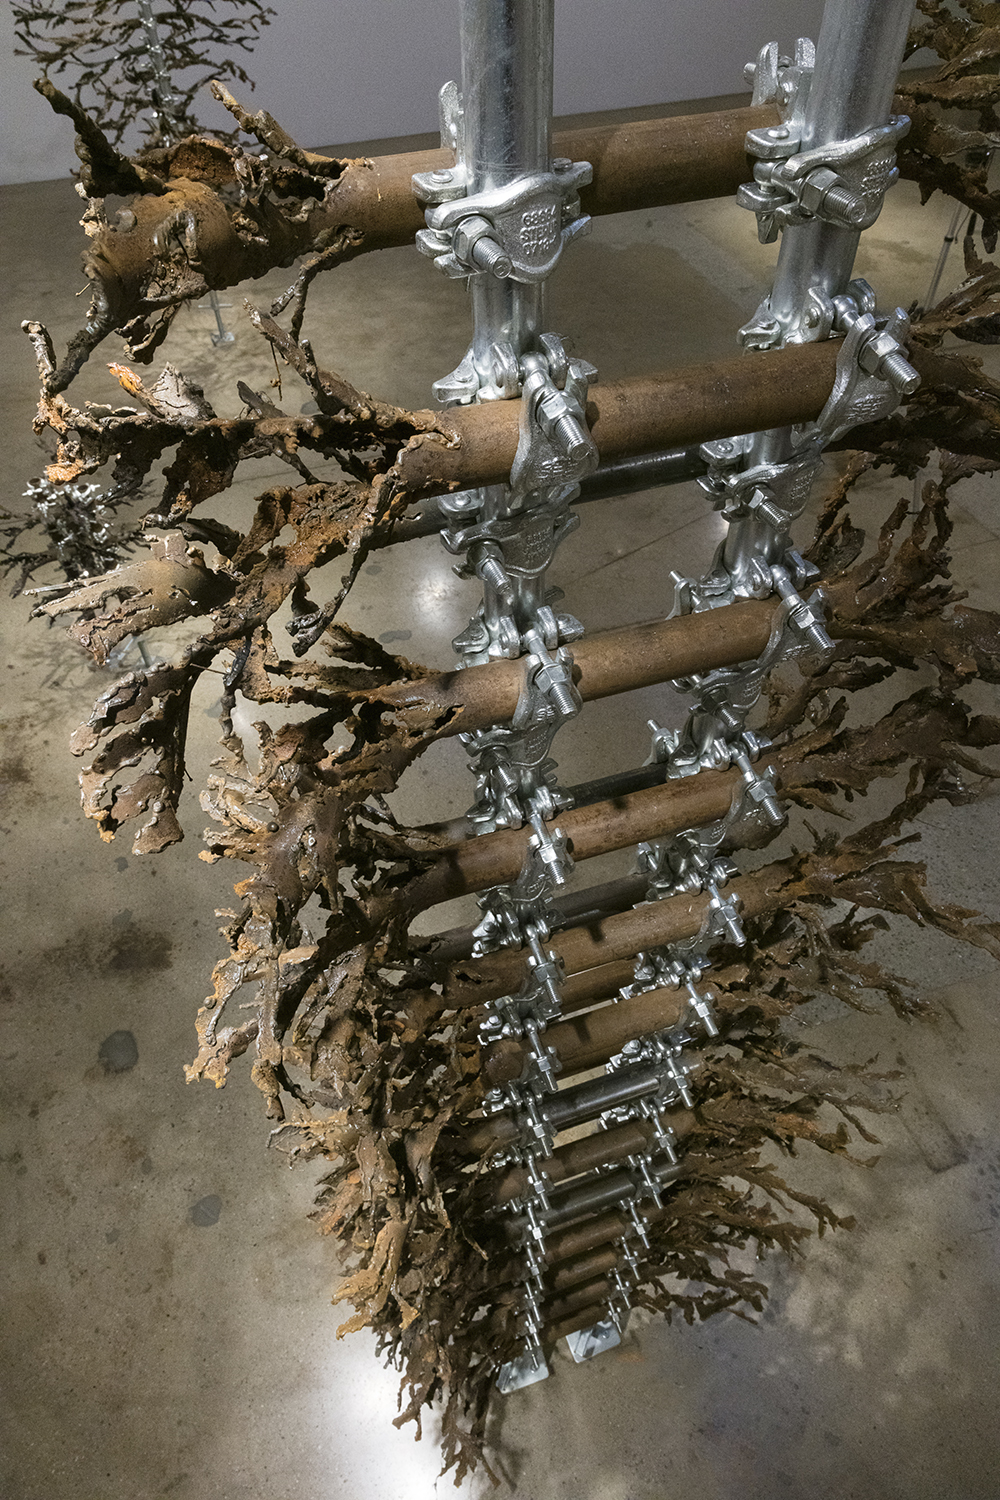 Luciana Lamothe. <em> Straight Burn, 2</em>, 2019. Iron pipes and clamps, 132 x 60 x 60 inches (335.3 x 152.4 x 152.4 cm) (detail)